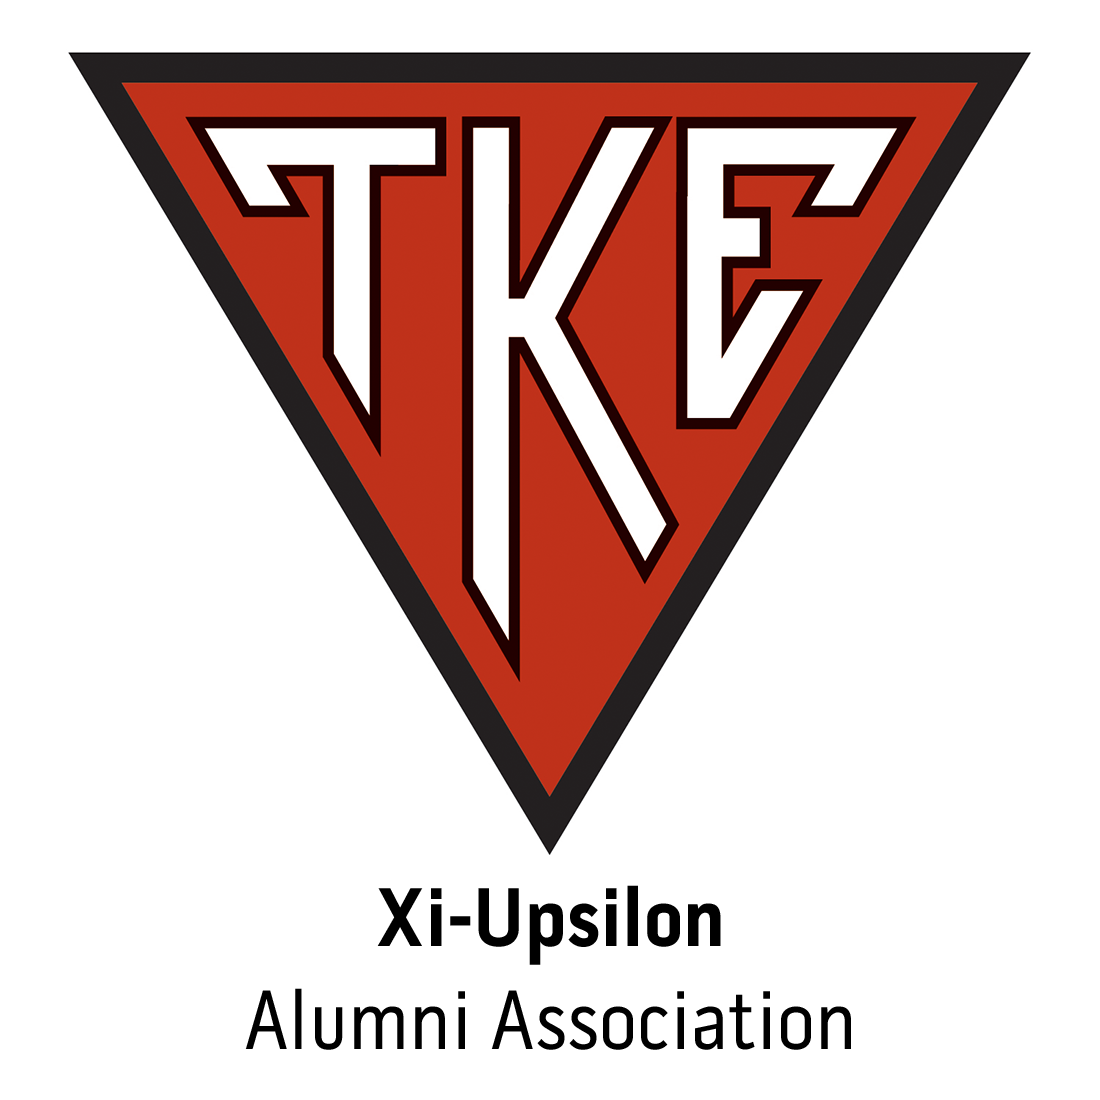 Xi-Upsilon Alumni Association Alumni at Rochester Institute of Technology